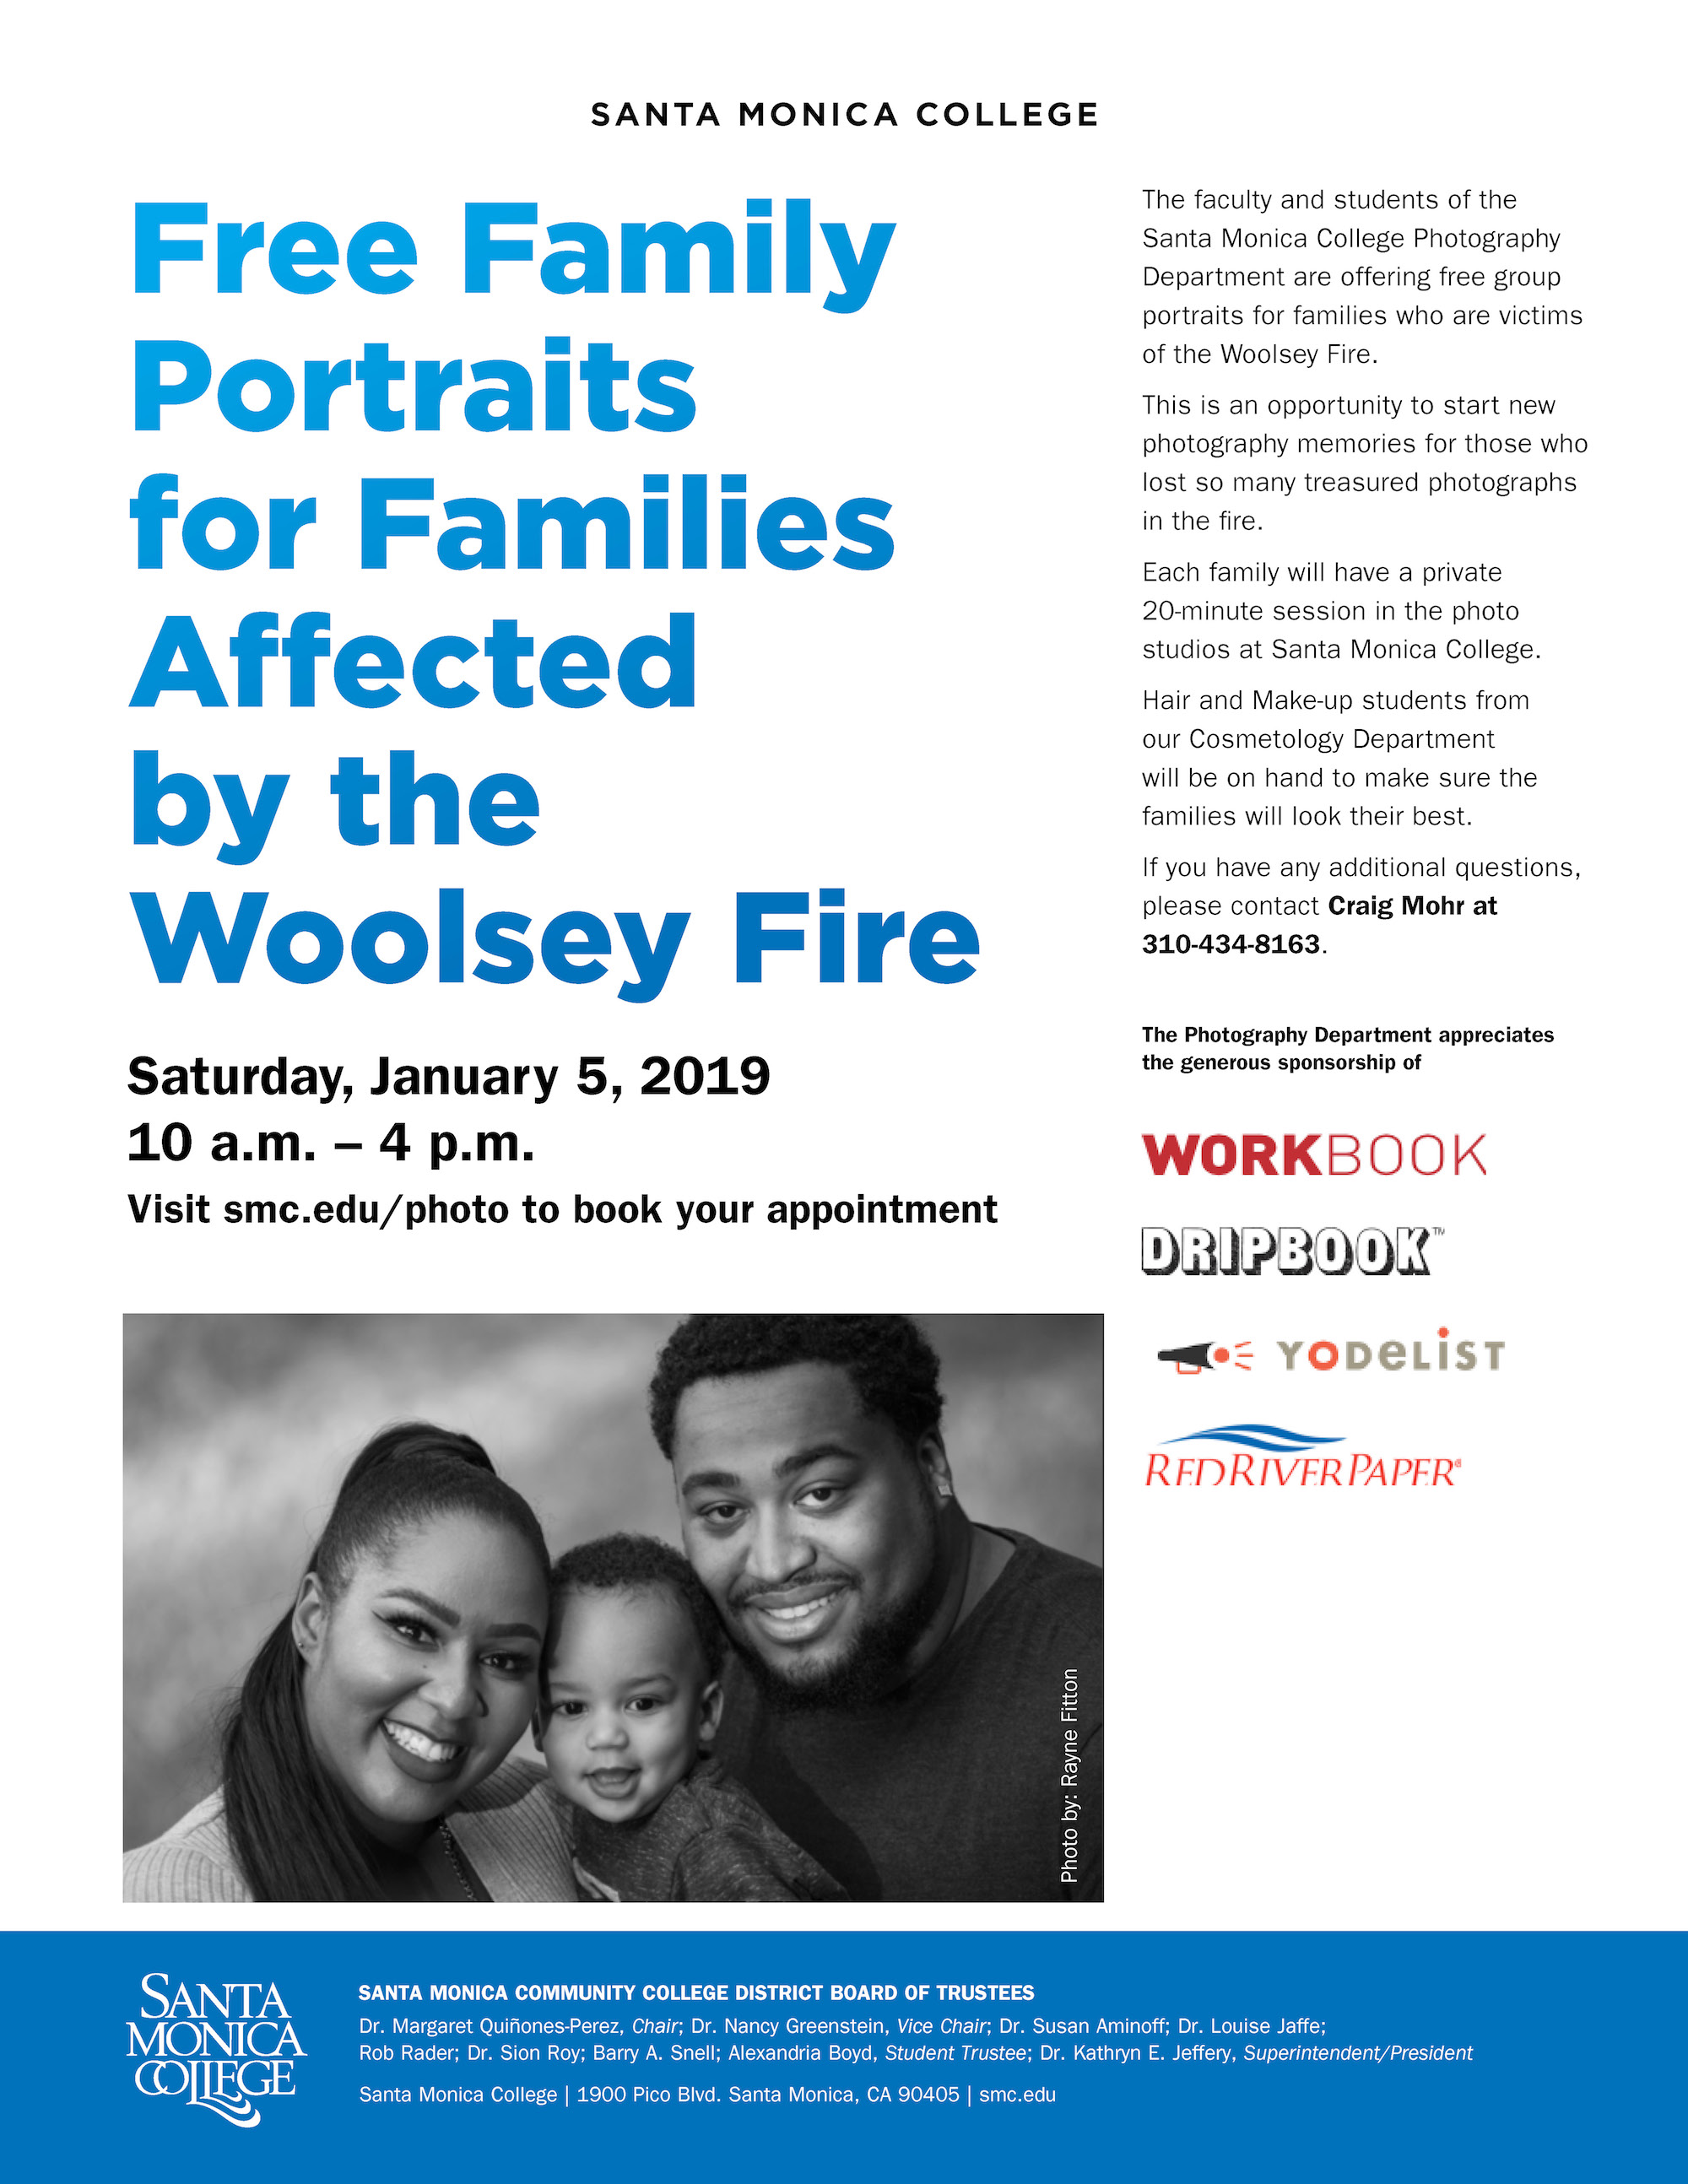 Free Family Portraits for Woolsey Fire Families